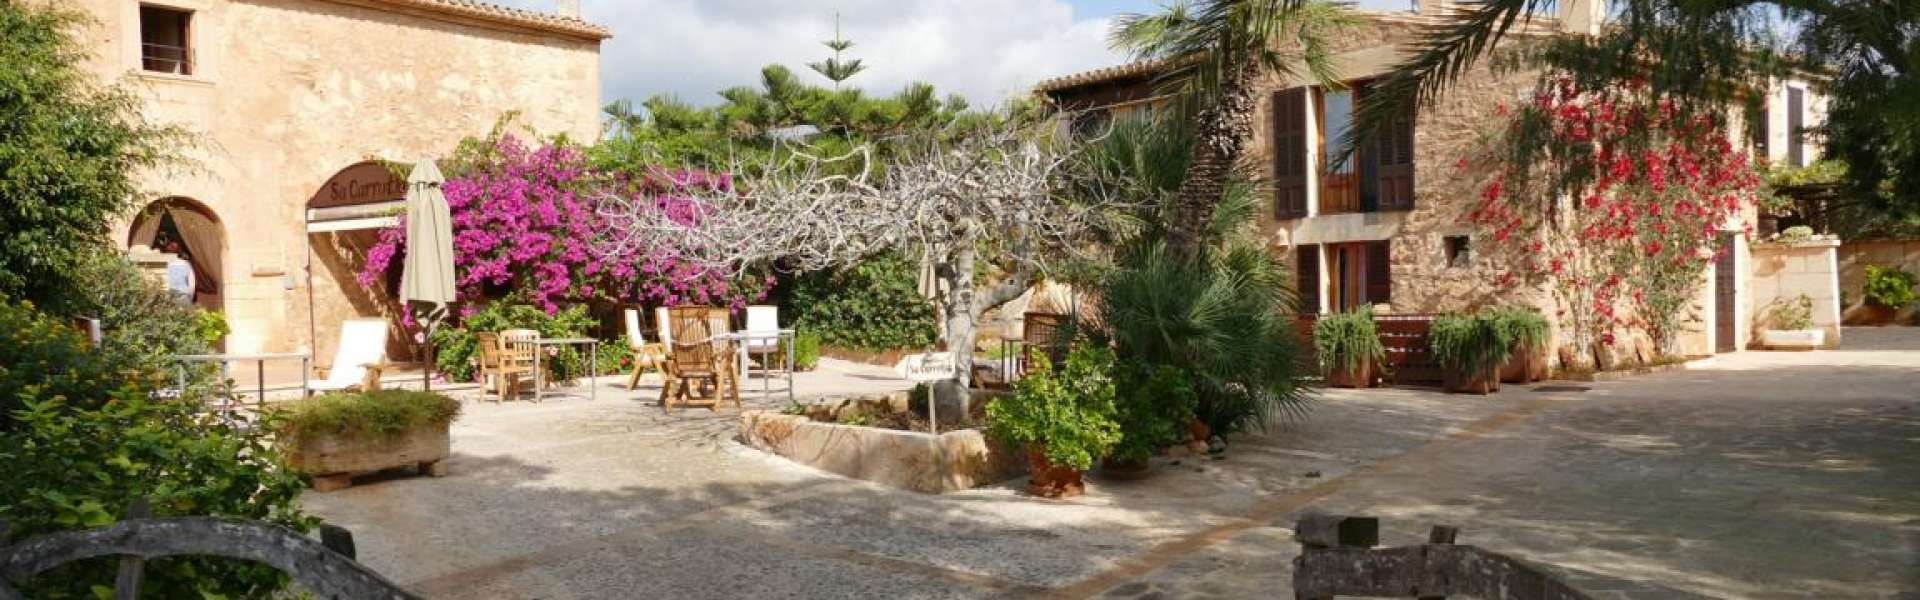 Country Hotel in Ses Salines